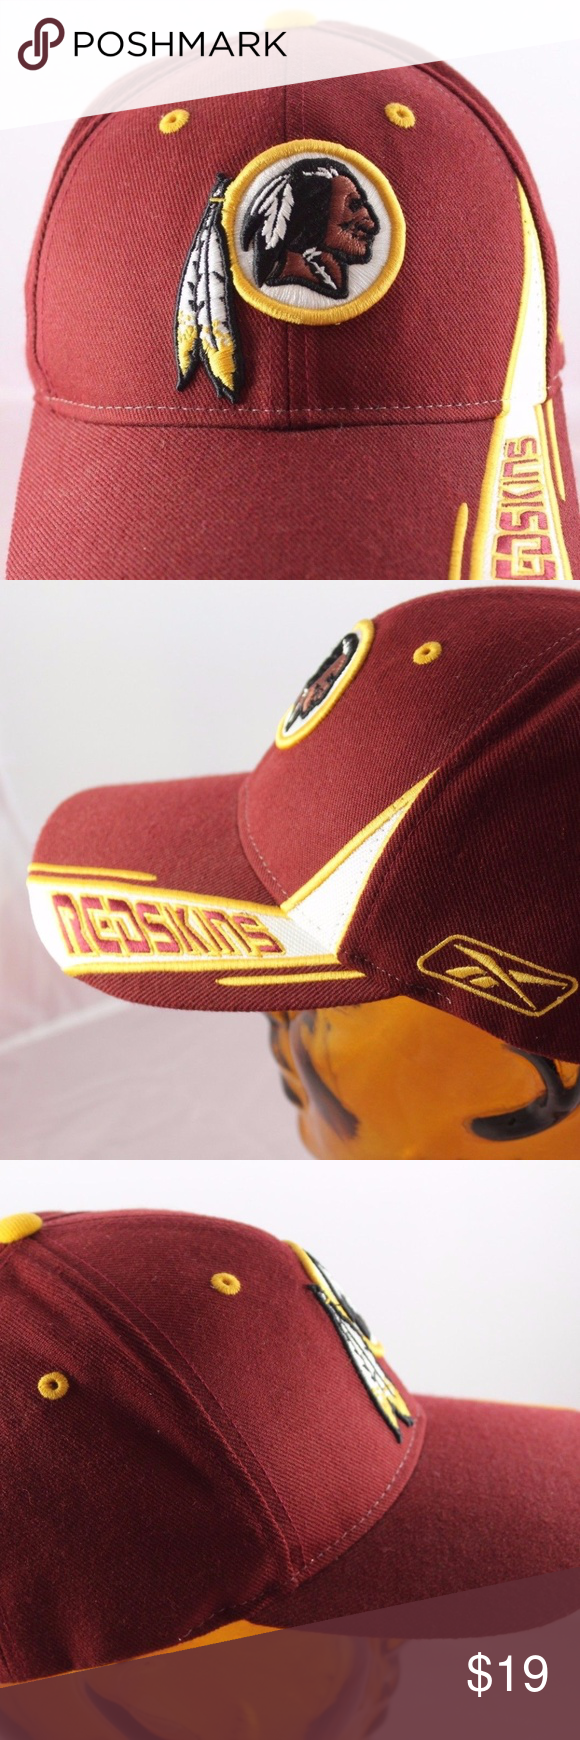 ef4f5a0f5 NFL-Washington-Redskins-Adjustable-Cap-Hat- This is a gently used ...